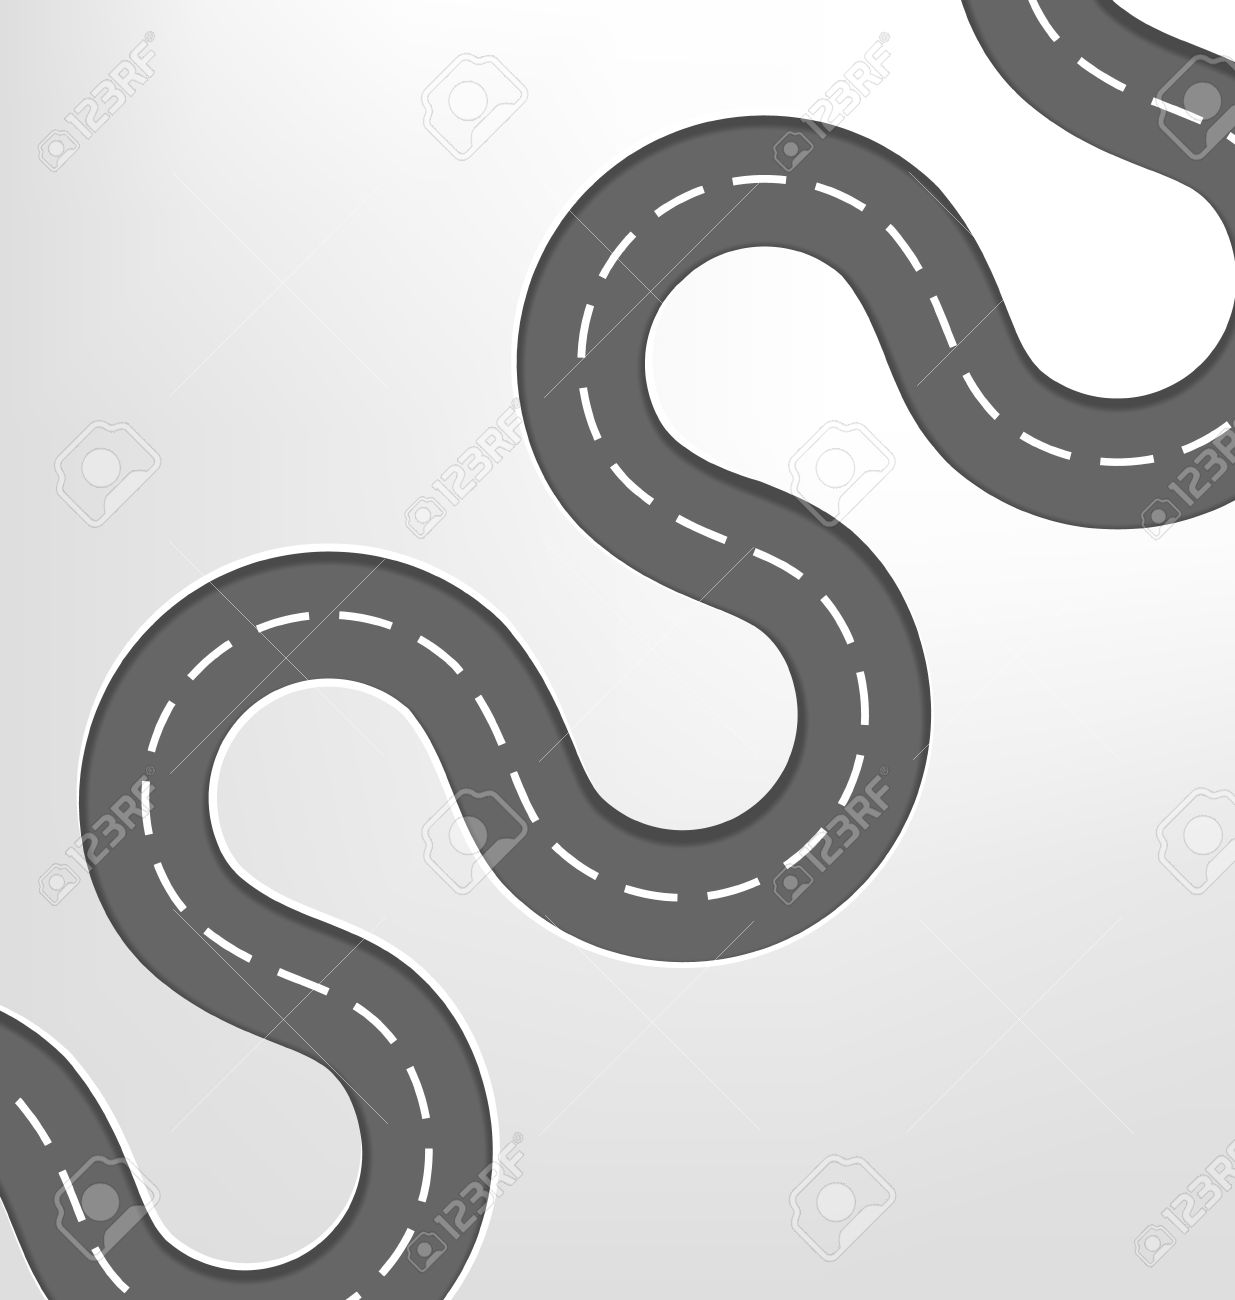 Free Curved Road Cliparts, Download Free Clip Art, Free Clip.